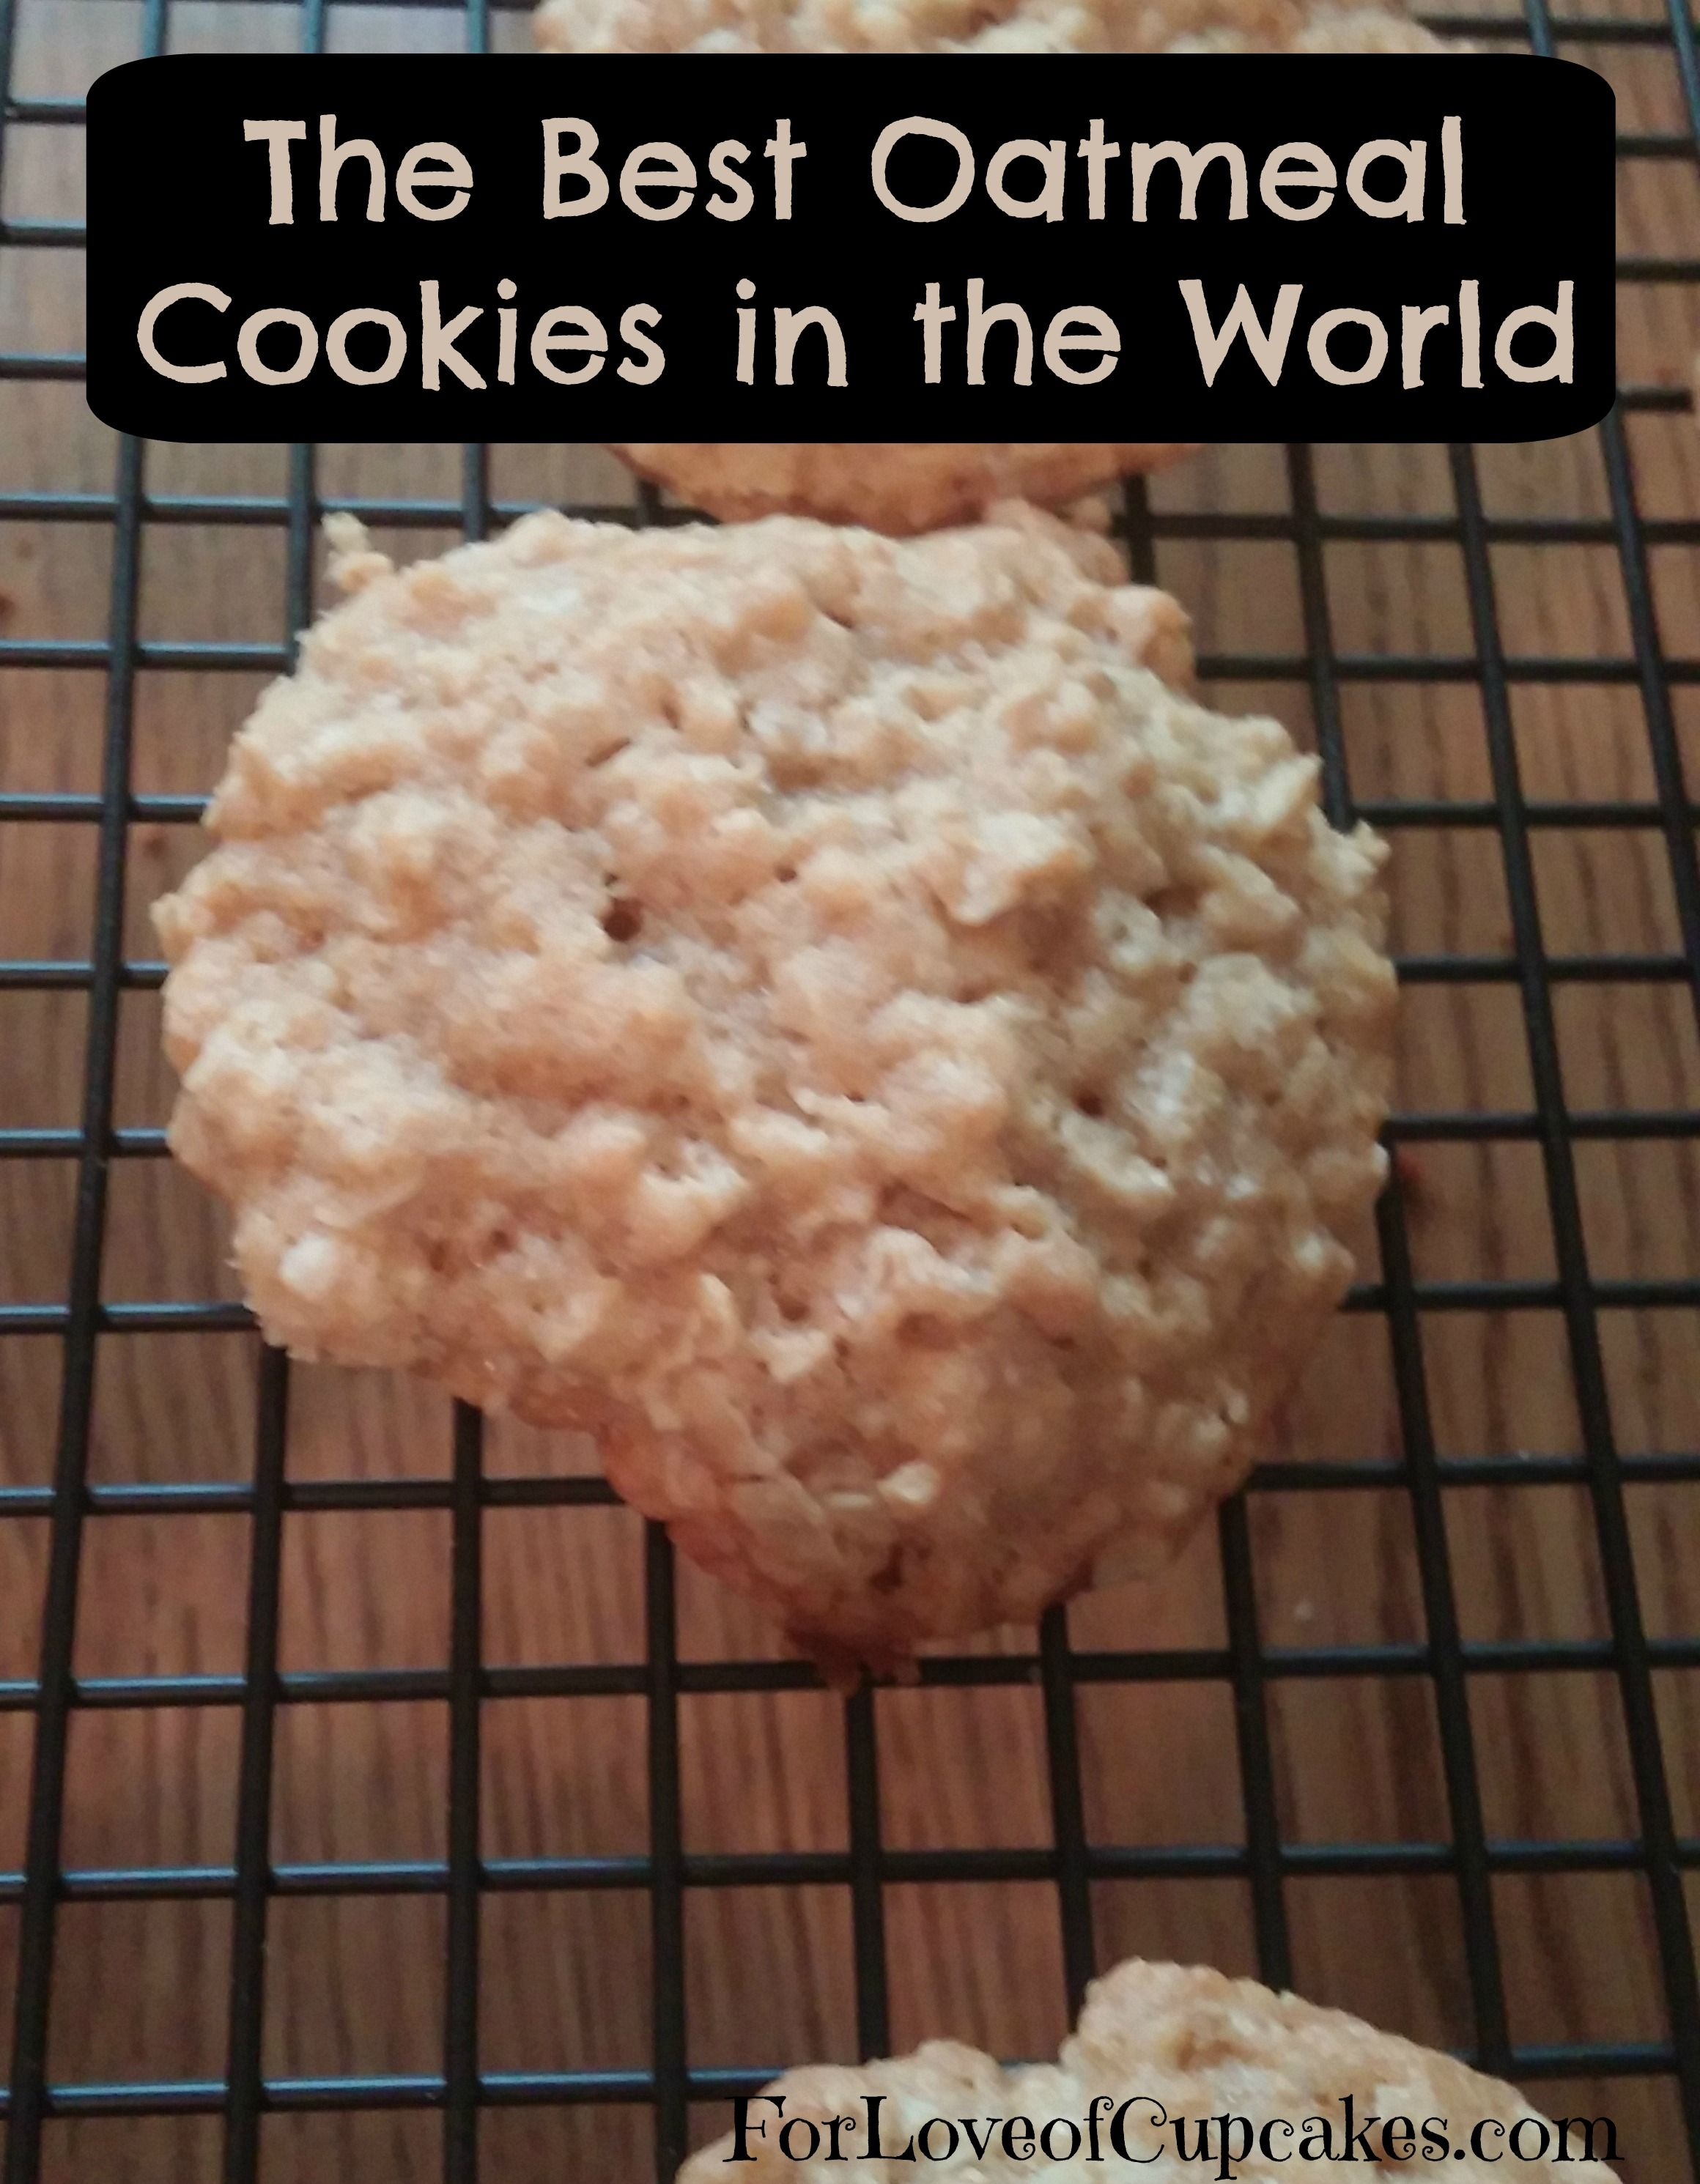 The Best Oatmeal Cookies in the World | For Love of Cupcakes | @4LoveofCupcakes